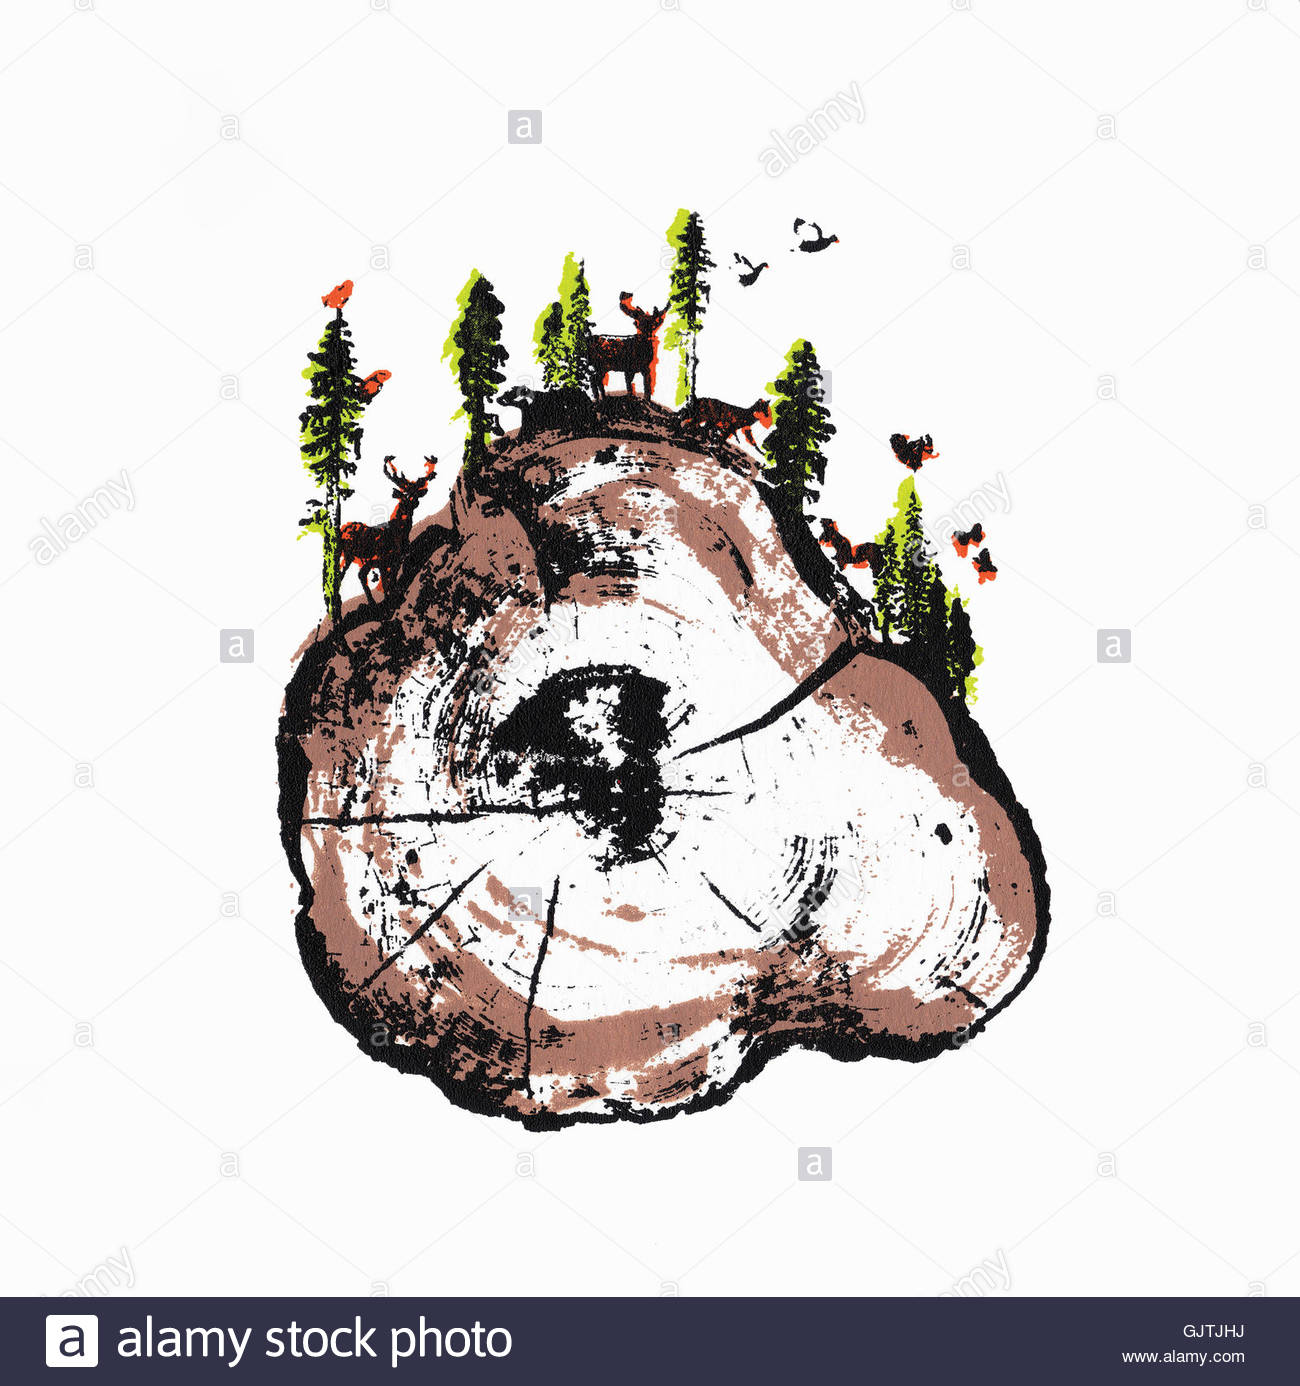 Woodland Animals On Top Of Cross Section Of Tree Trunk Stock